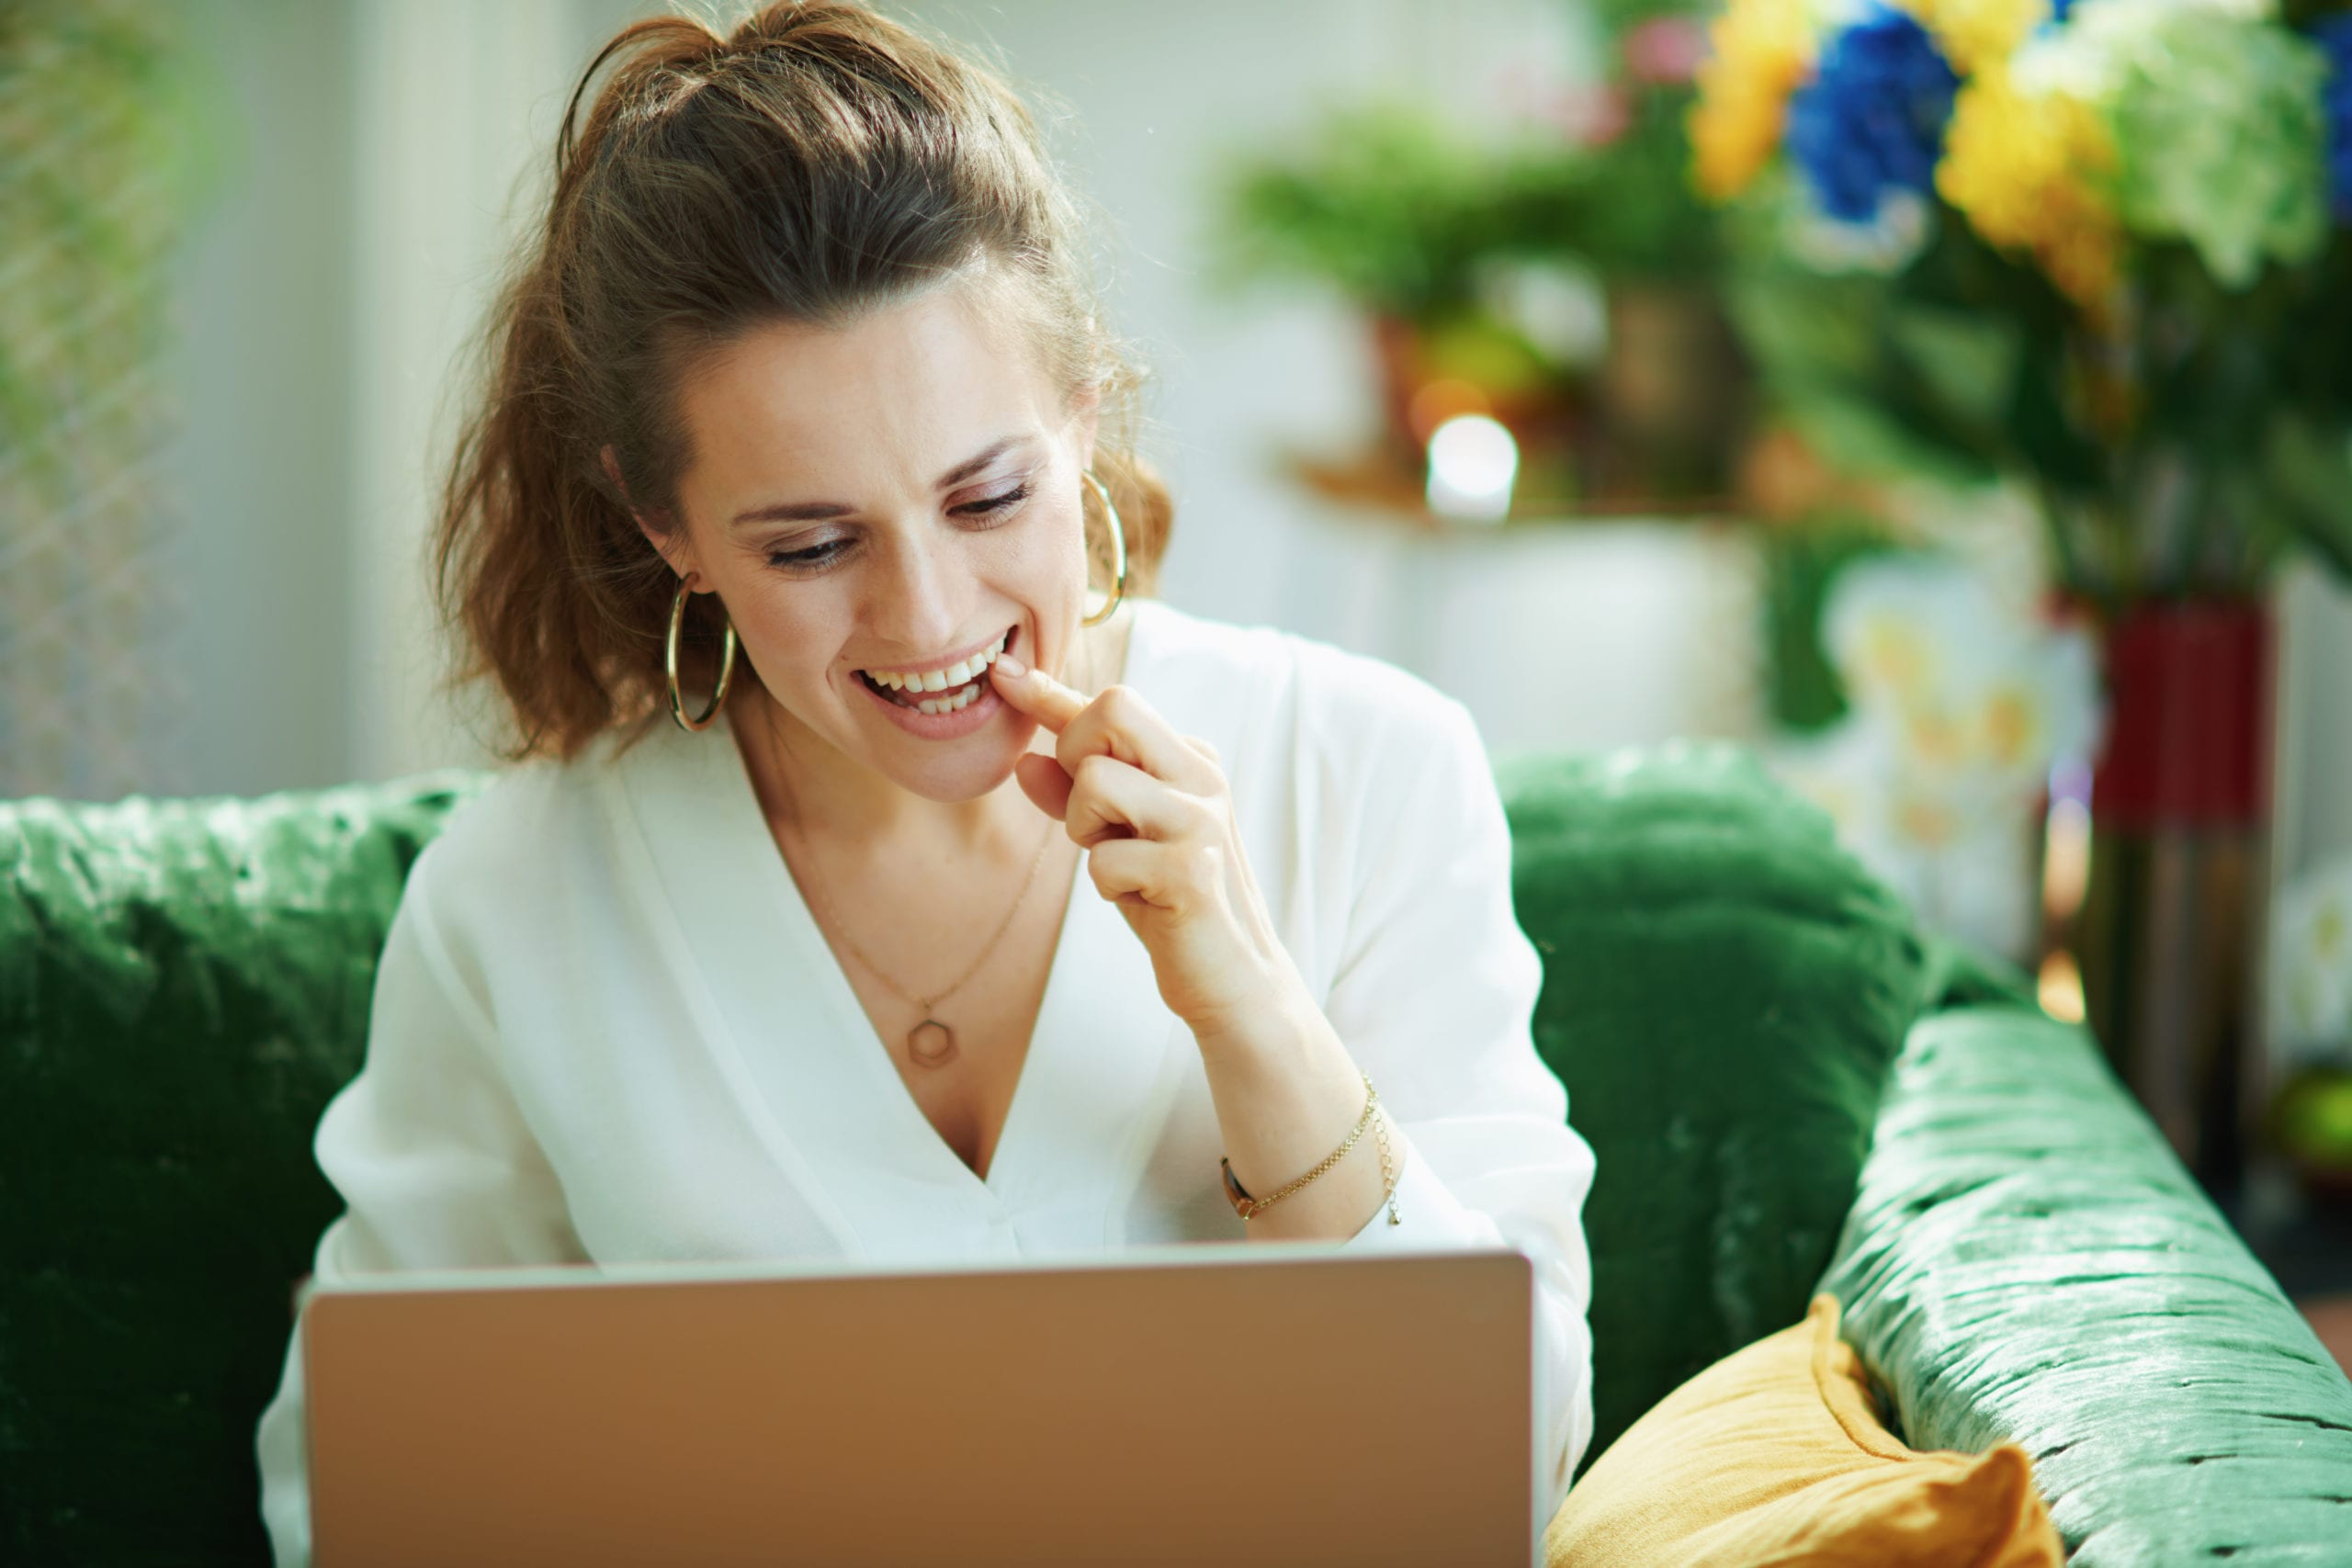 Woman pointing to her tooth during an online dentist appointment